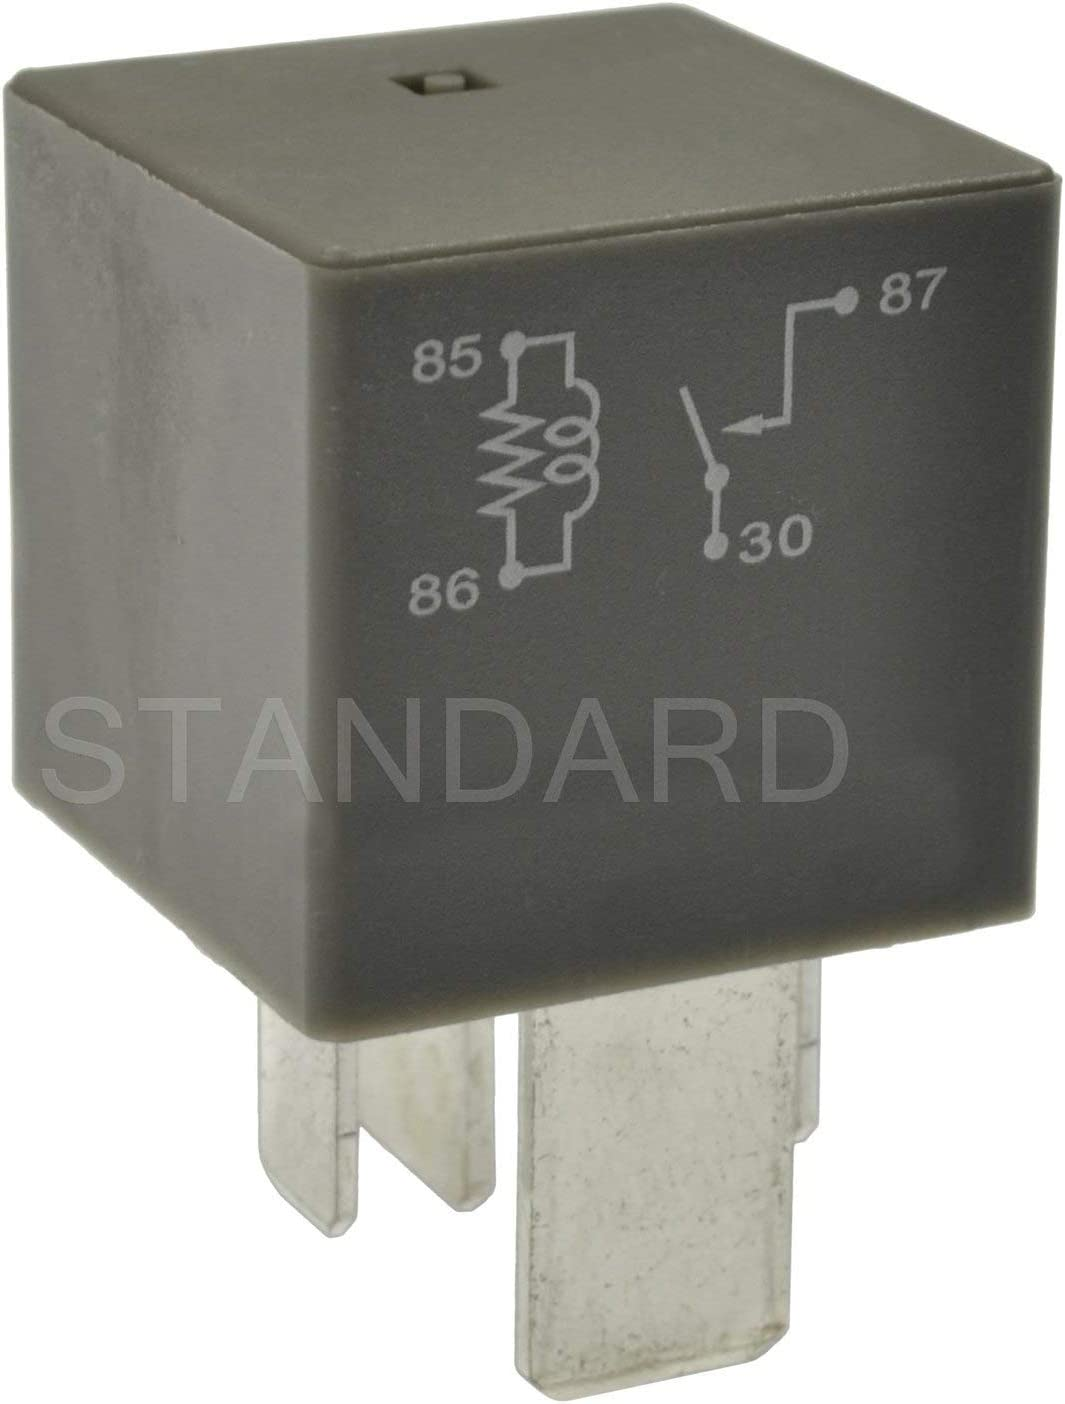 Standard Ignition RY-1760 Secondary Air Injection Pump Relay